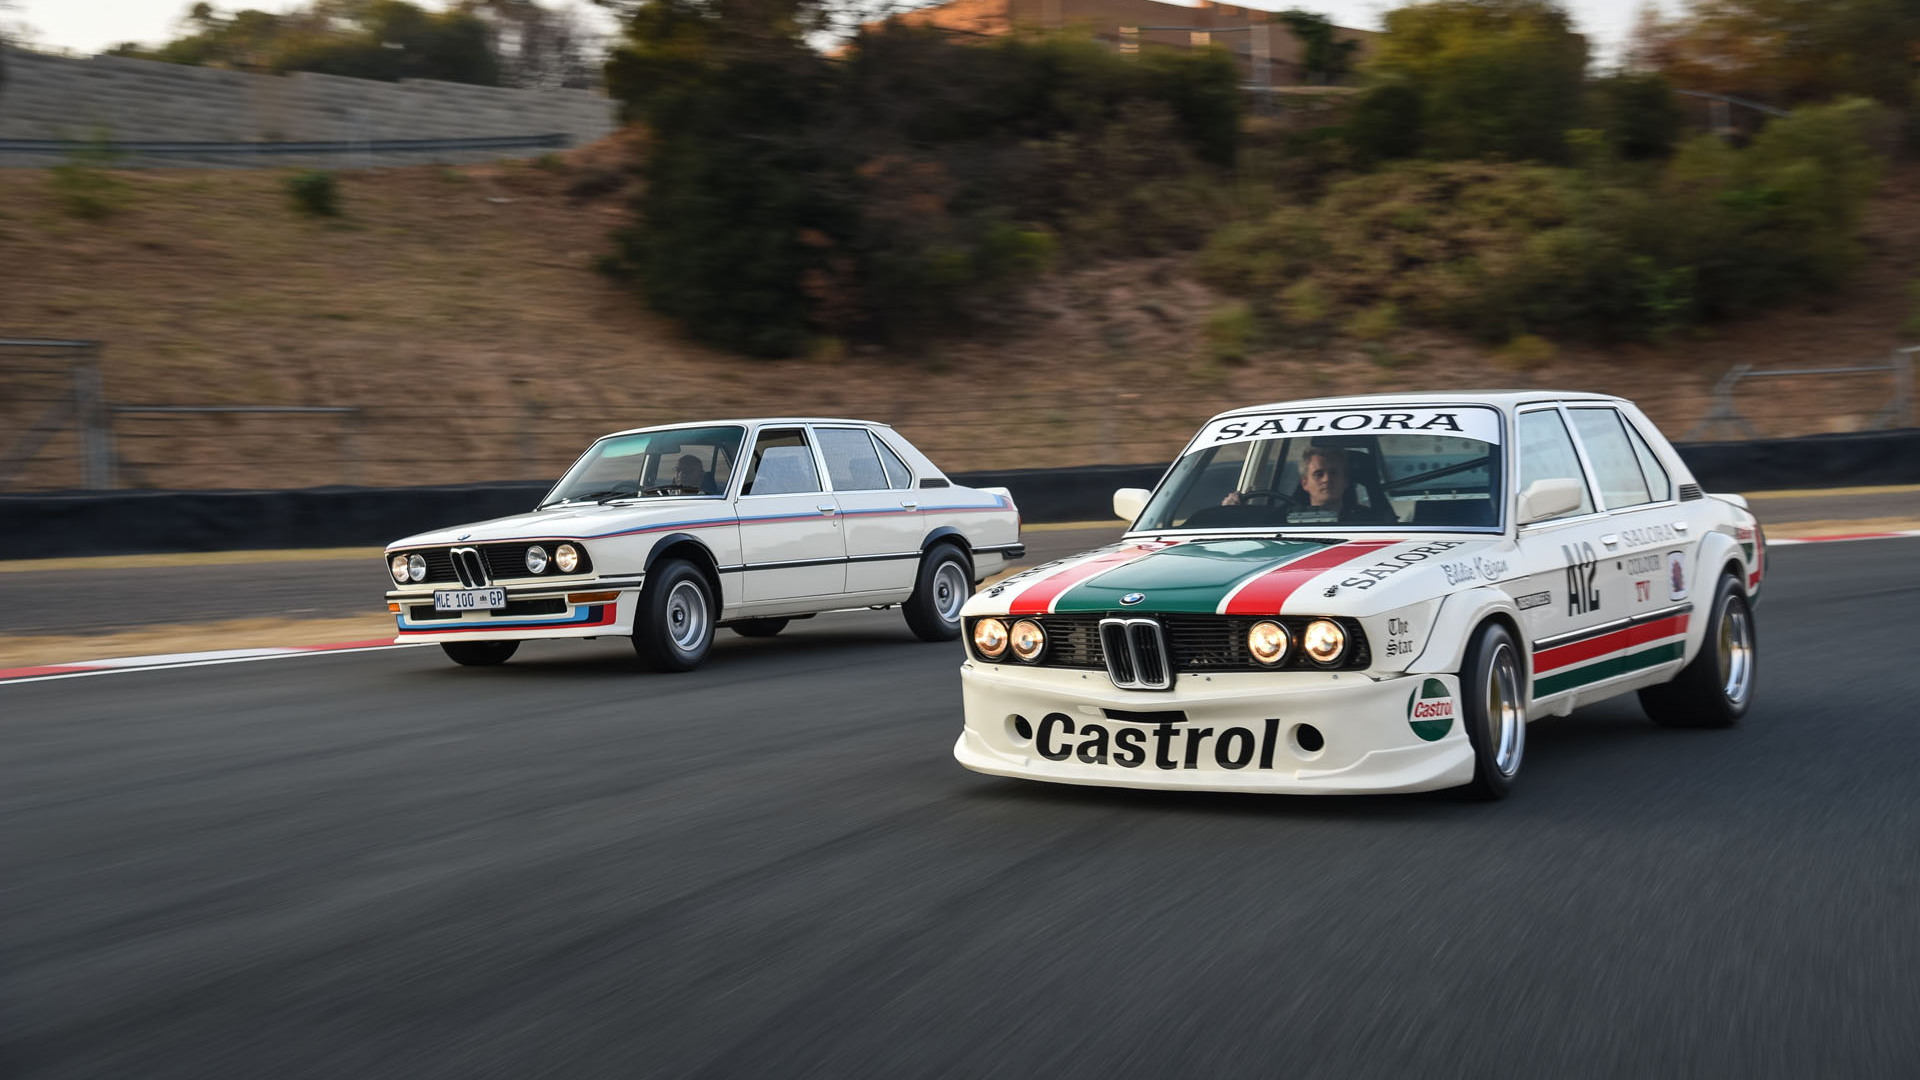 BMW 530 MLE road and race car reunion